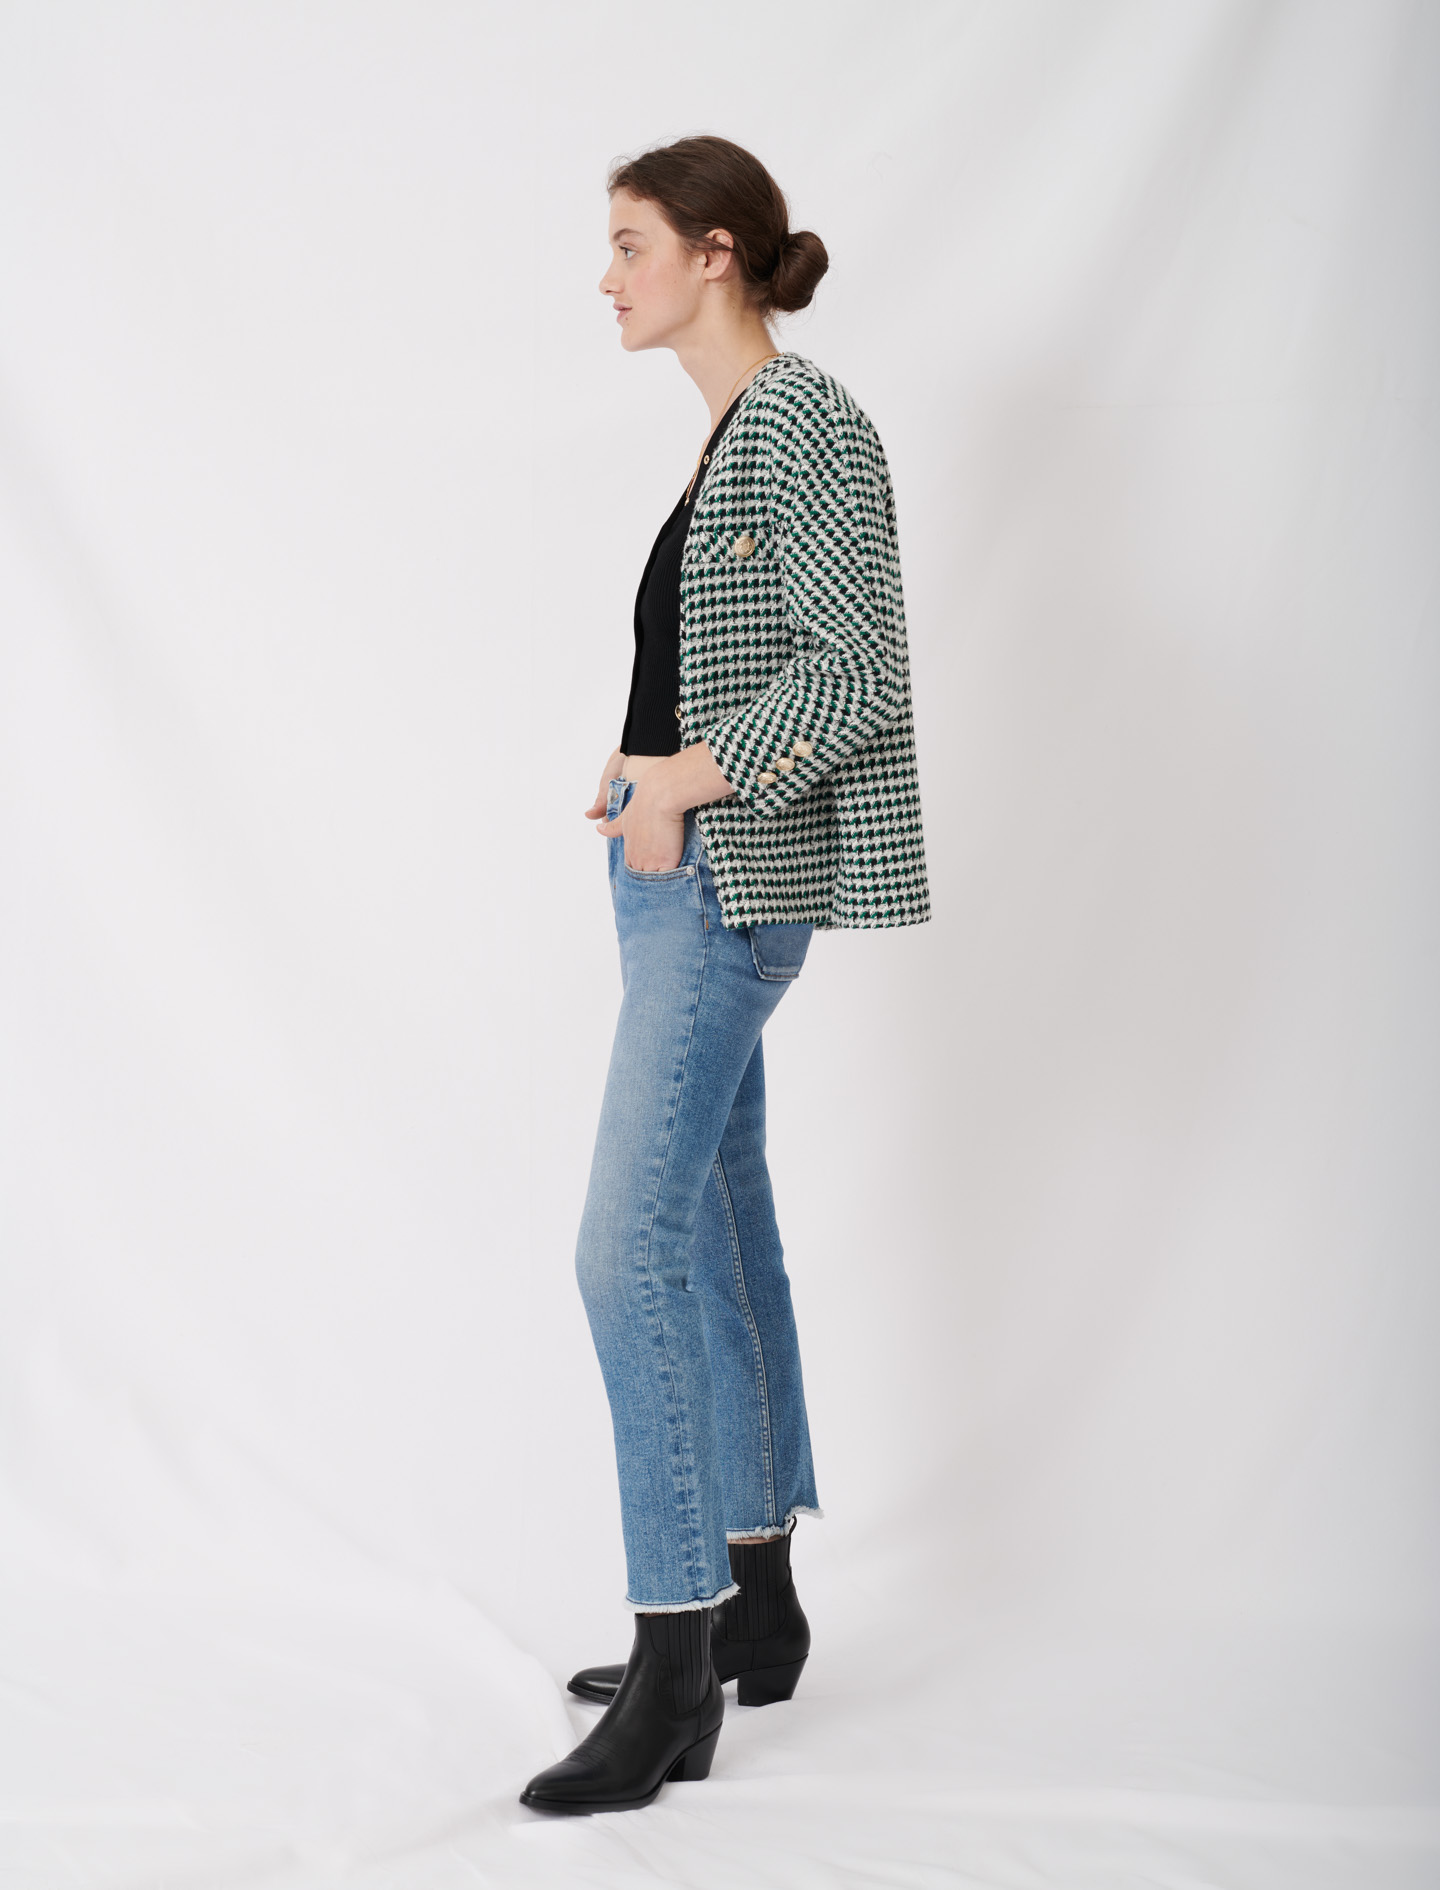 Green tweed-style jacket - Multiclr